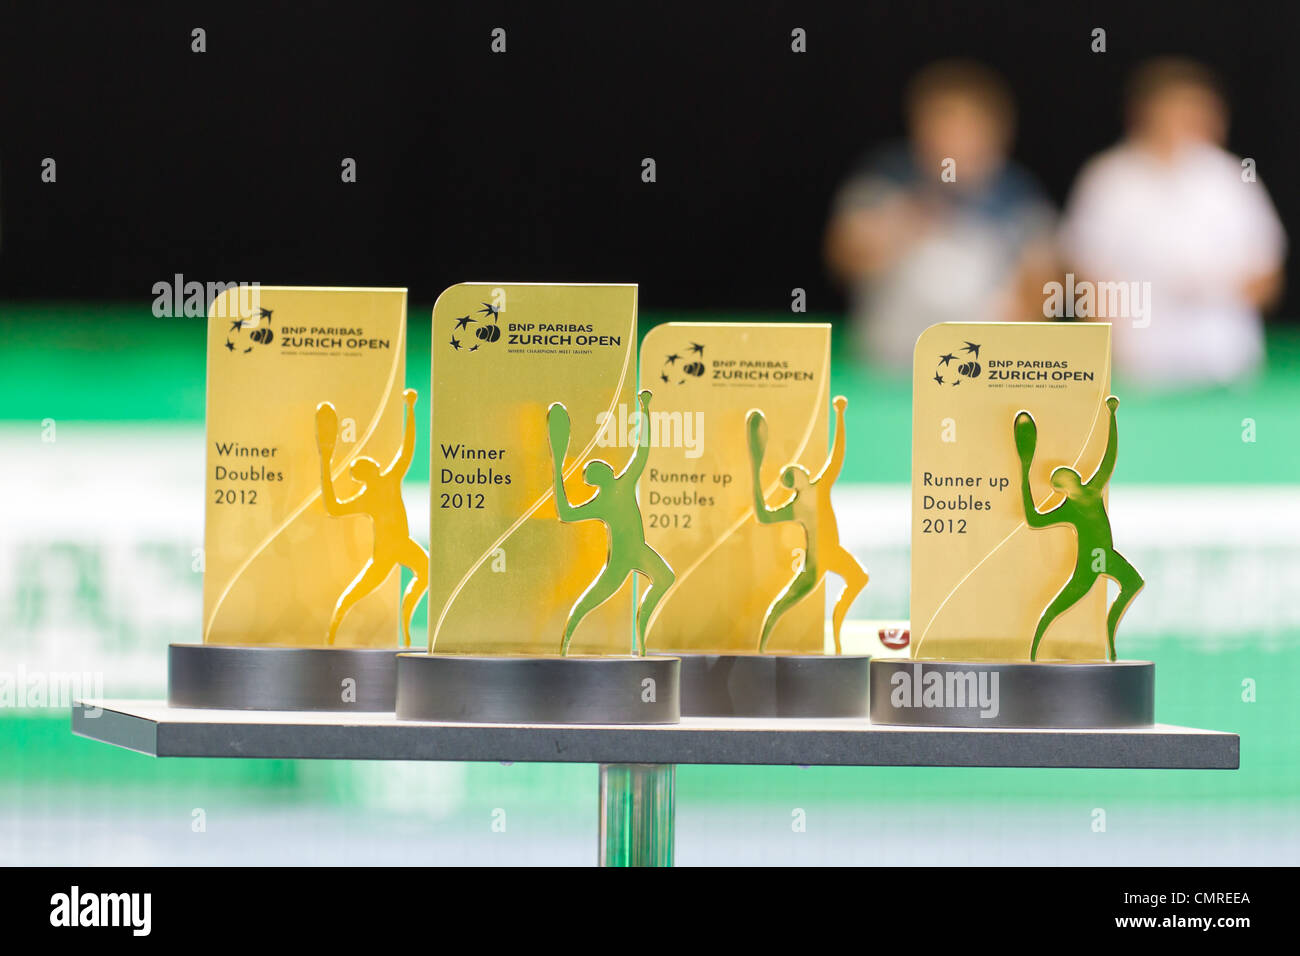 Award ceremony for double competition pairing champs and talents at BNP Paribas Open Champions Tour in Zurich - Stock Image